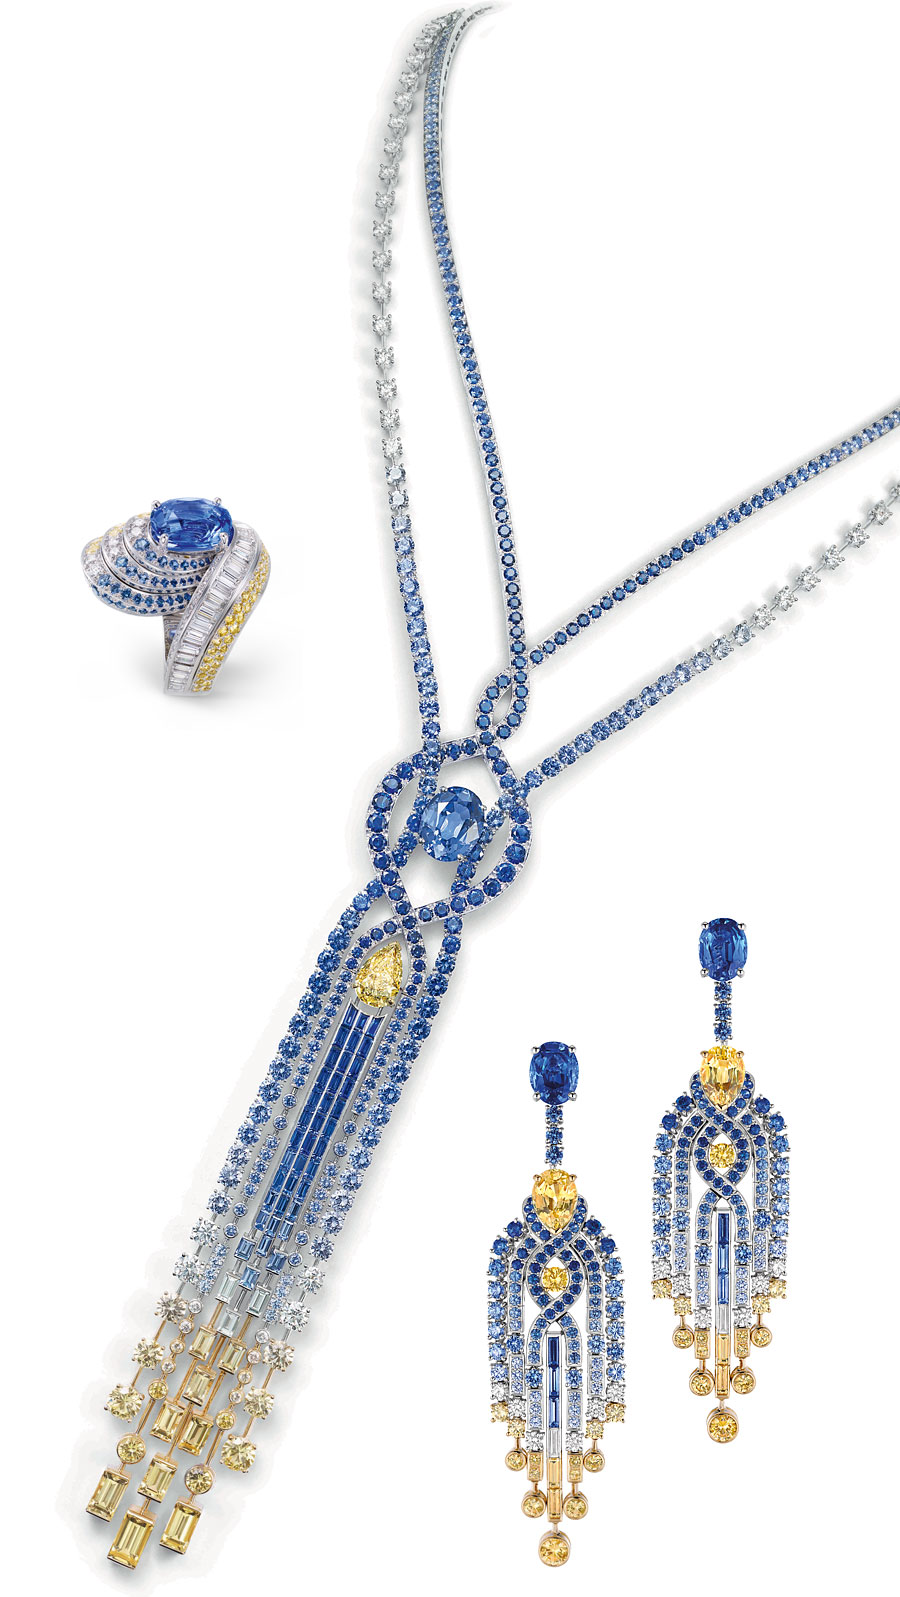 On the right you see a pair of earrings set with diamonds, round and baguette-cut blue and yellow sapphires, two pear-shaped yellow sapphires of 2.23cts and 2.51 cts and two oval-cut blue sapphires from Ceylon, one - 2.72 carats, the other 3.32 carats. The necklace of sapphires and diamonds features a pear-shaped VVS1 Fancy Yellow diamond of 3.77 carats and an oval-cut blue Ceylon sapphire of 10.23 cts. The ring in white gold, set with brilliant-cut, square-cut and baguette-cut diamonds, round blue and yellow sapphires and an oval-cut 5.10 cts sapphire from Madagascar.